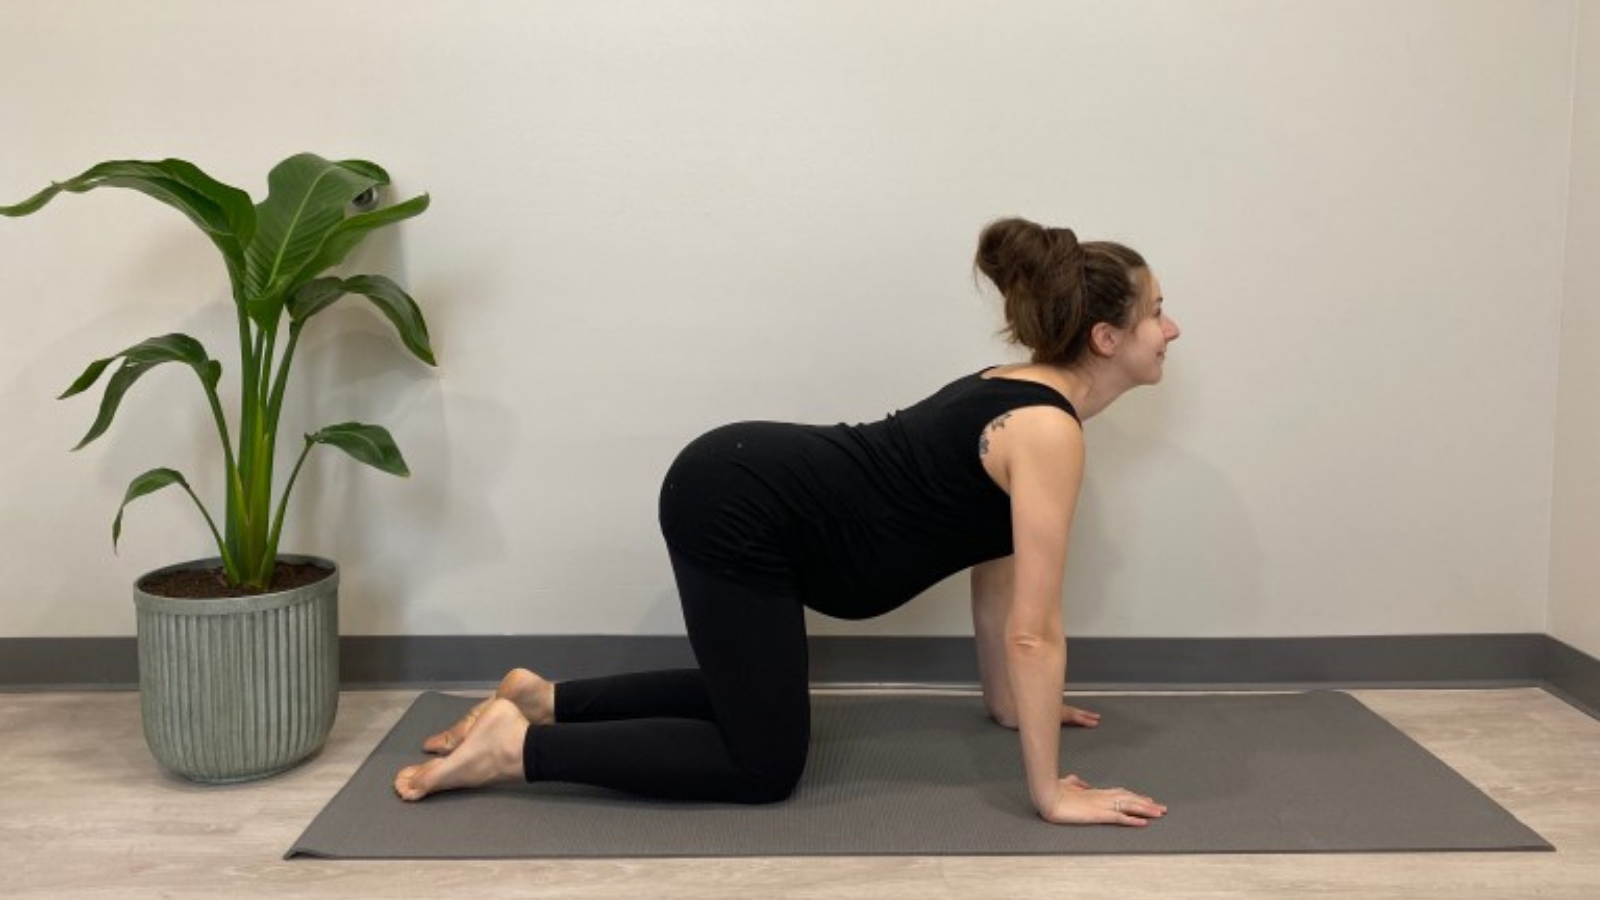 Pregnant yoga student practicing Cow Pose (Bitilasana) for improved mobility around the spine and pelvis